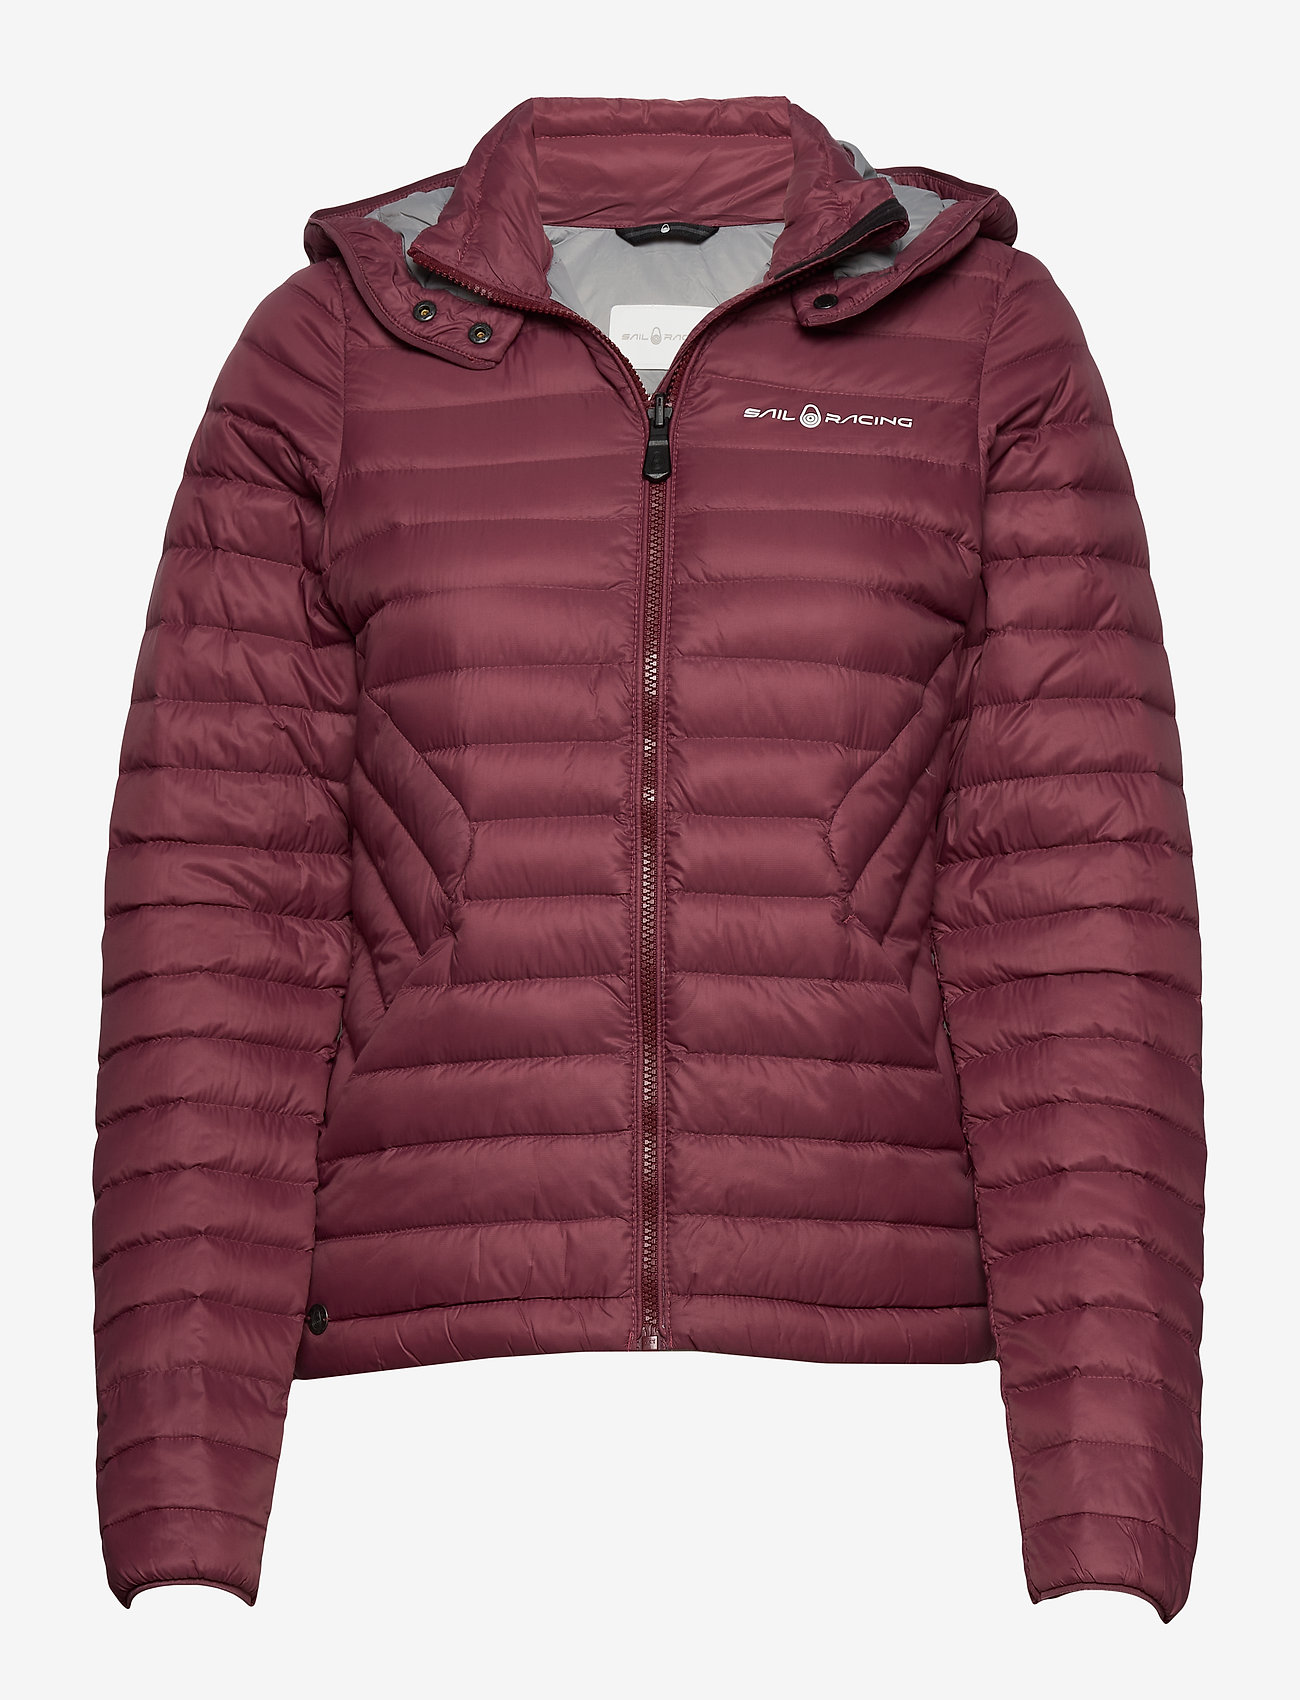 Sail Racing - W LINK DOWN JACKET - sports jackets - maroon - 0